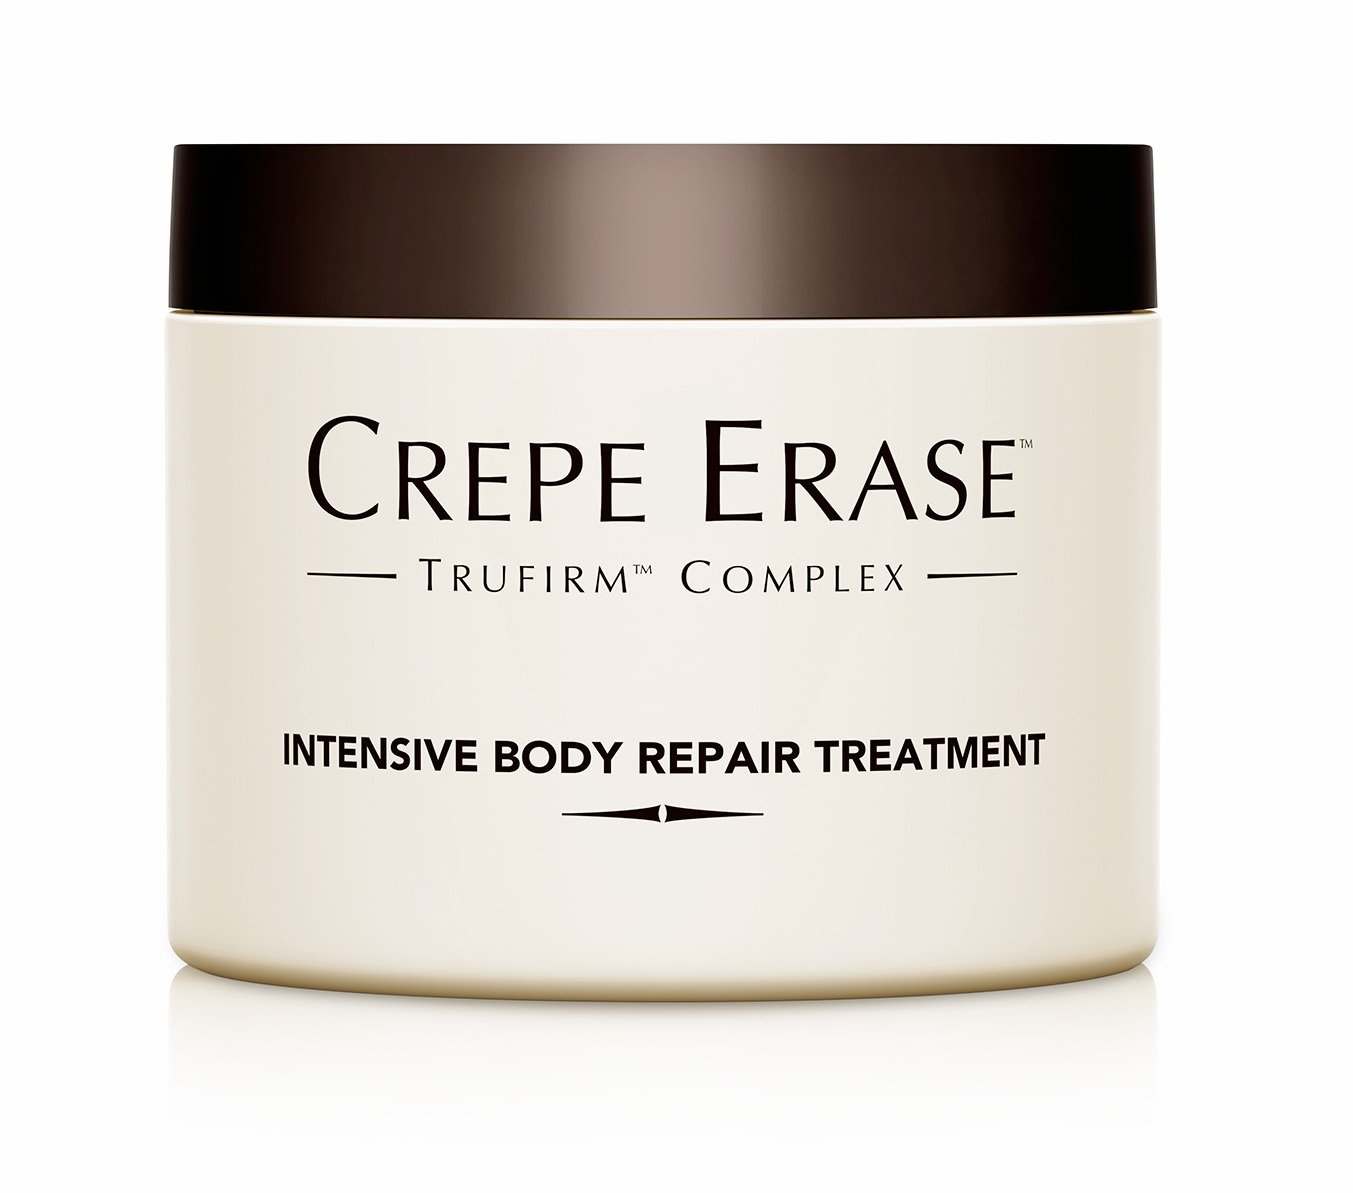 Crepe Erase Intensive Body Repair Treatment with TruFirm Complex